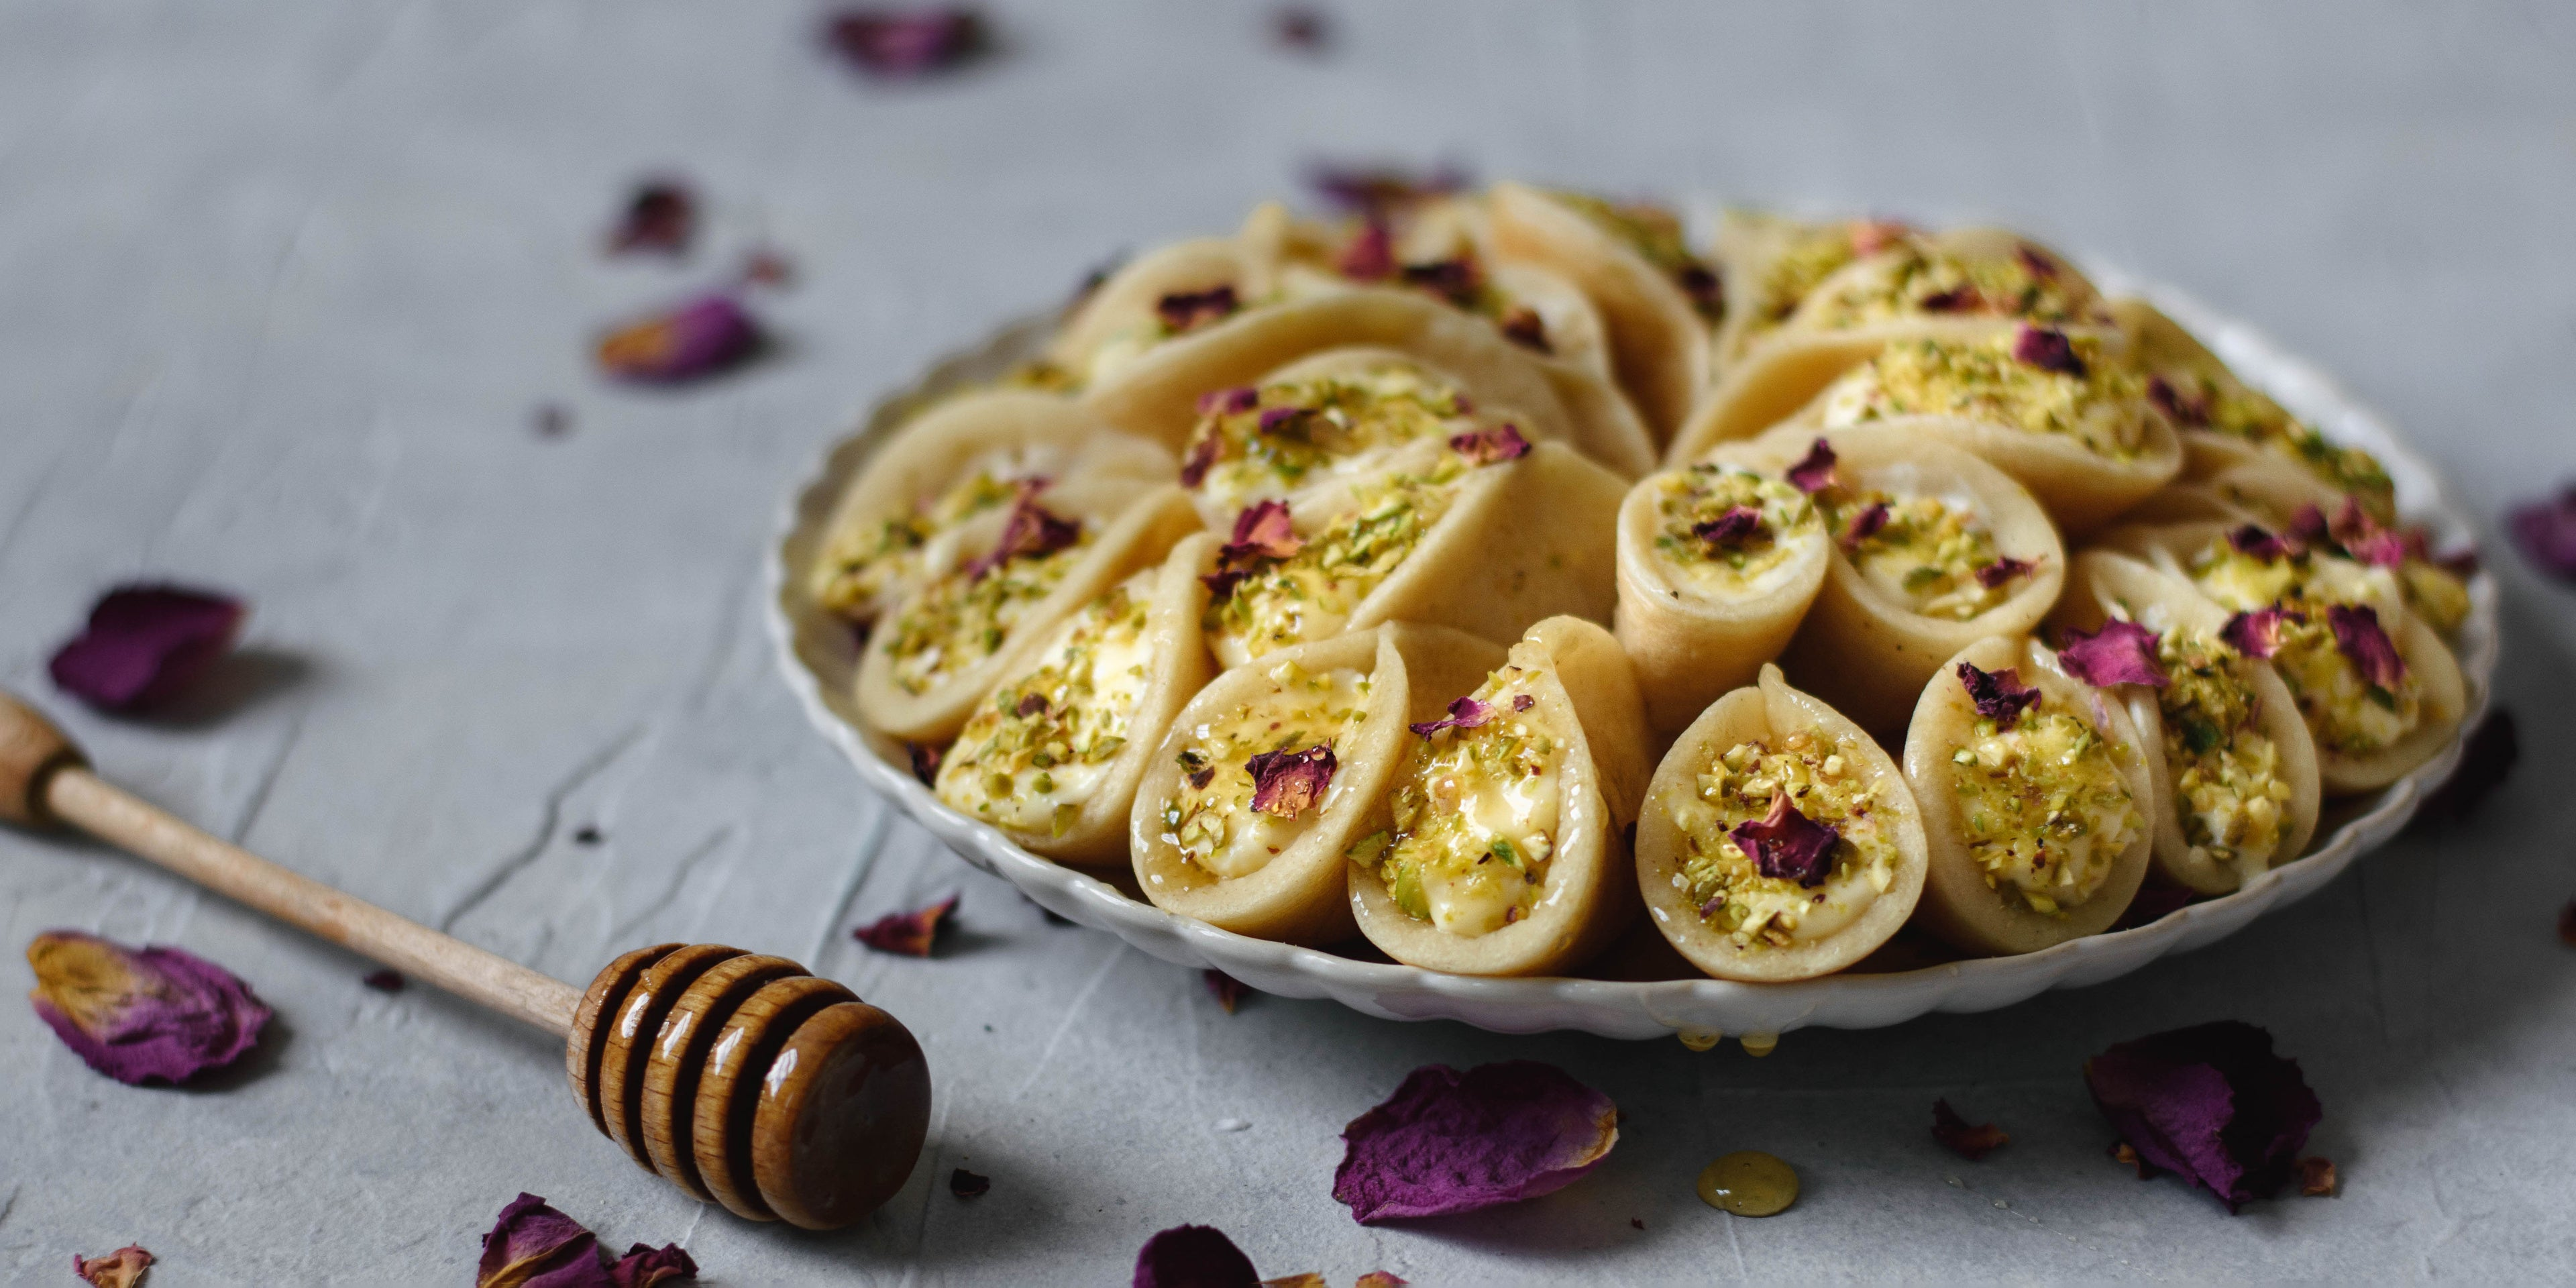 Plate of Qatayef with honey drizzler and petals